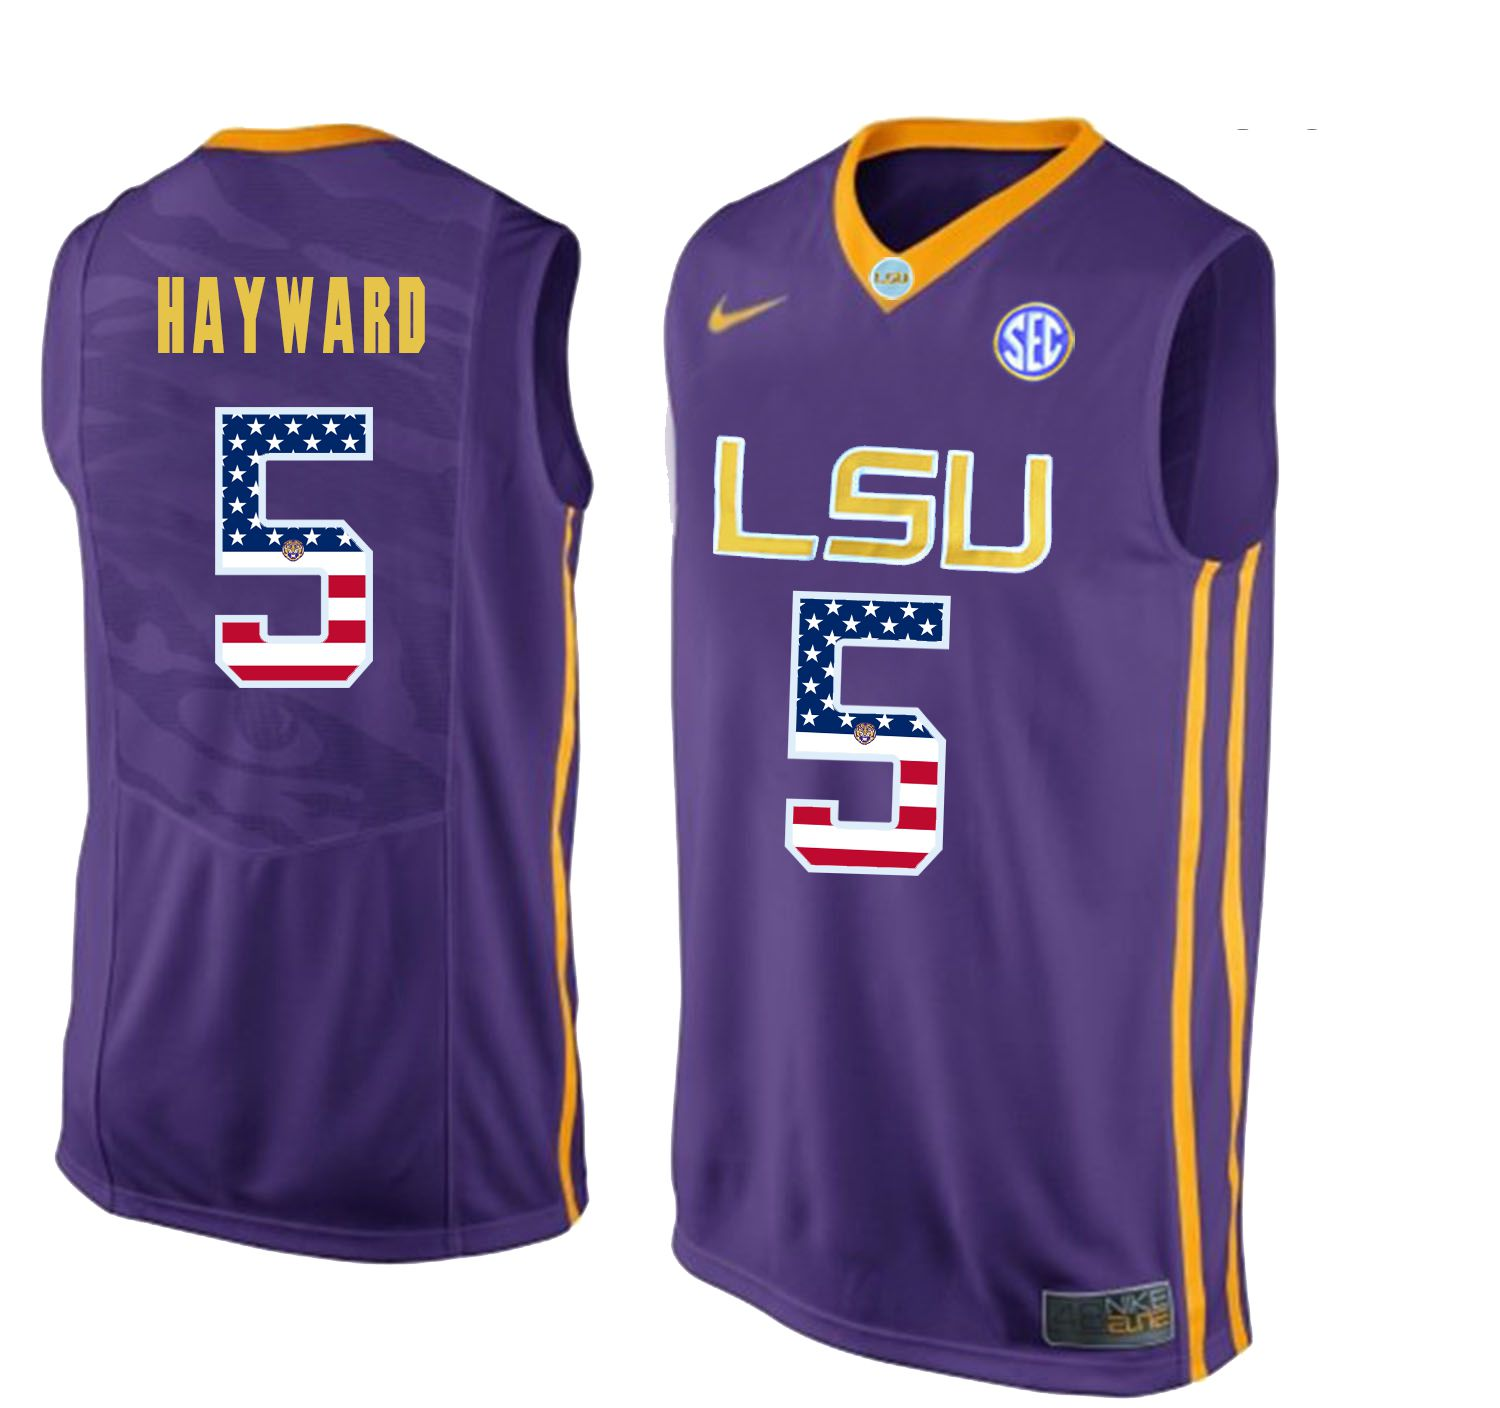 Men LSU Tigers 5 Hayward Purple Flag Customized NCAA Jerseys